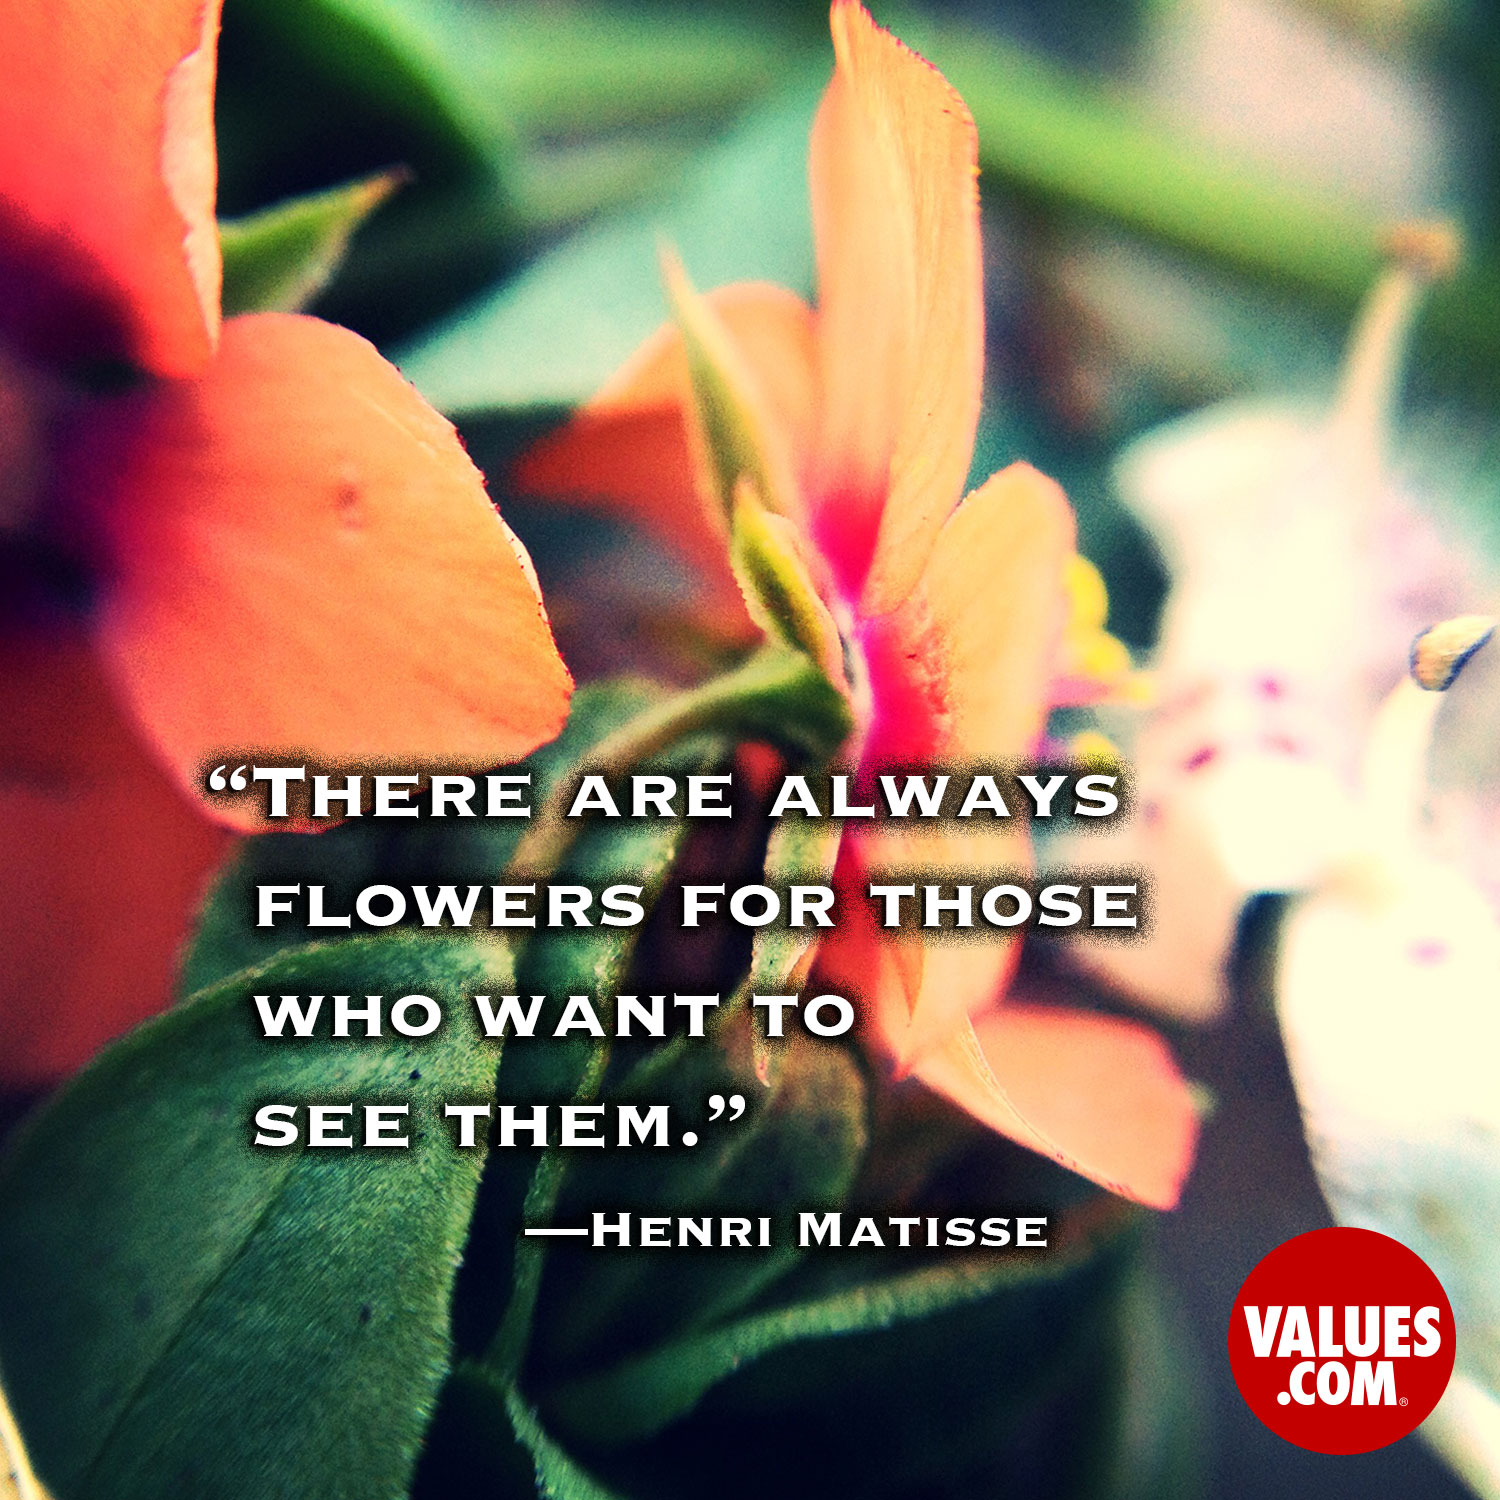 There are always flowers for those who want to see them. —Henri Matisse